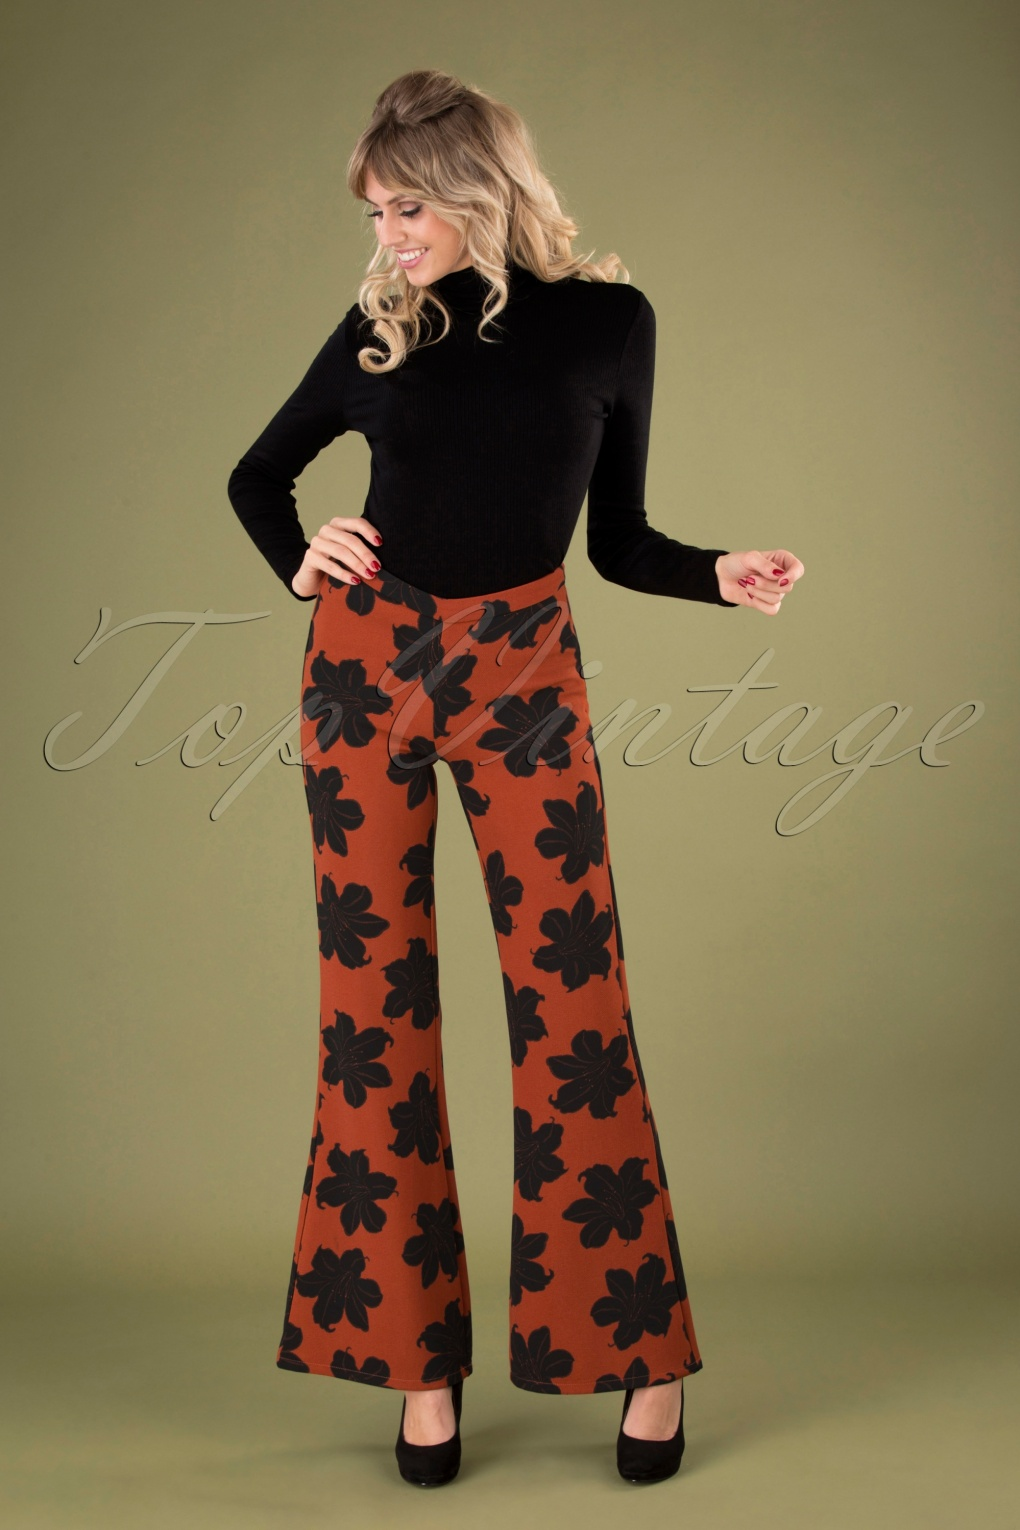 Vintage High Waisted Trousers, Sailor Pants, Jeans 70s Peonia Floral Trousers in Rust £64.58 AT vintagedancer.com